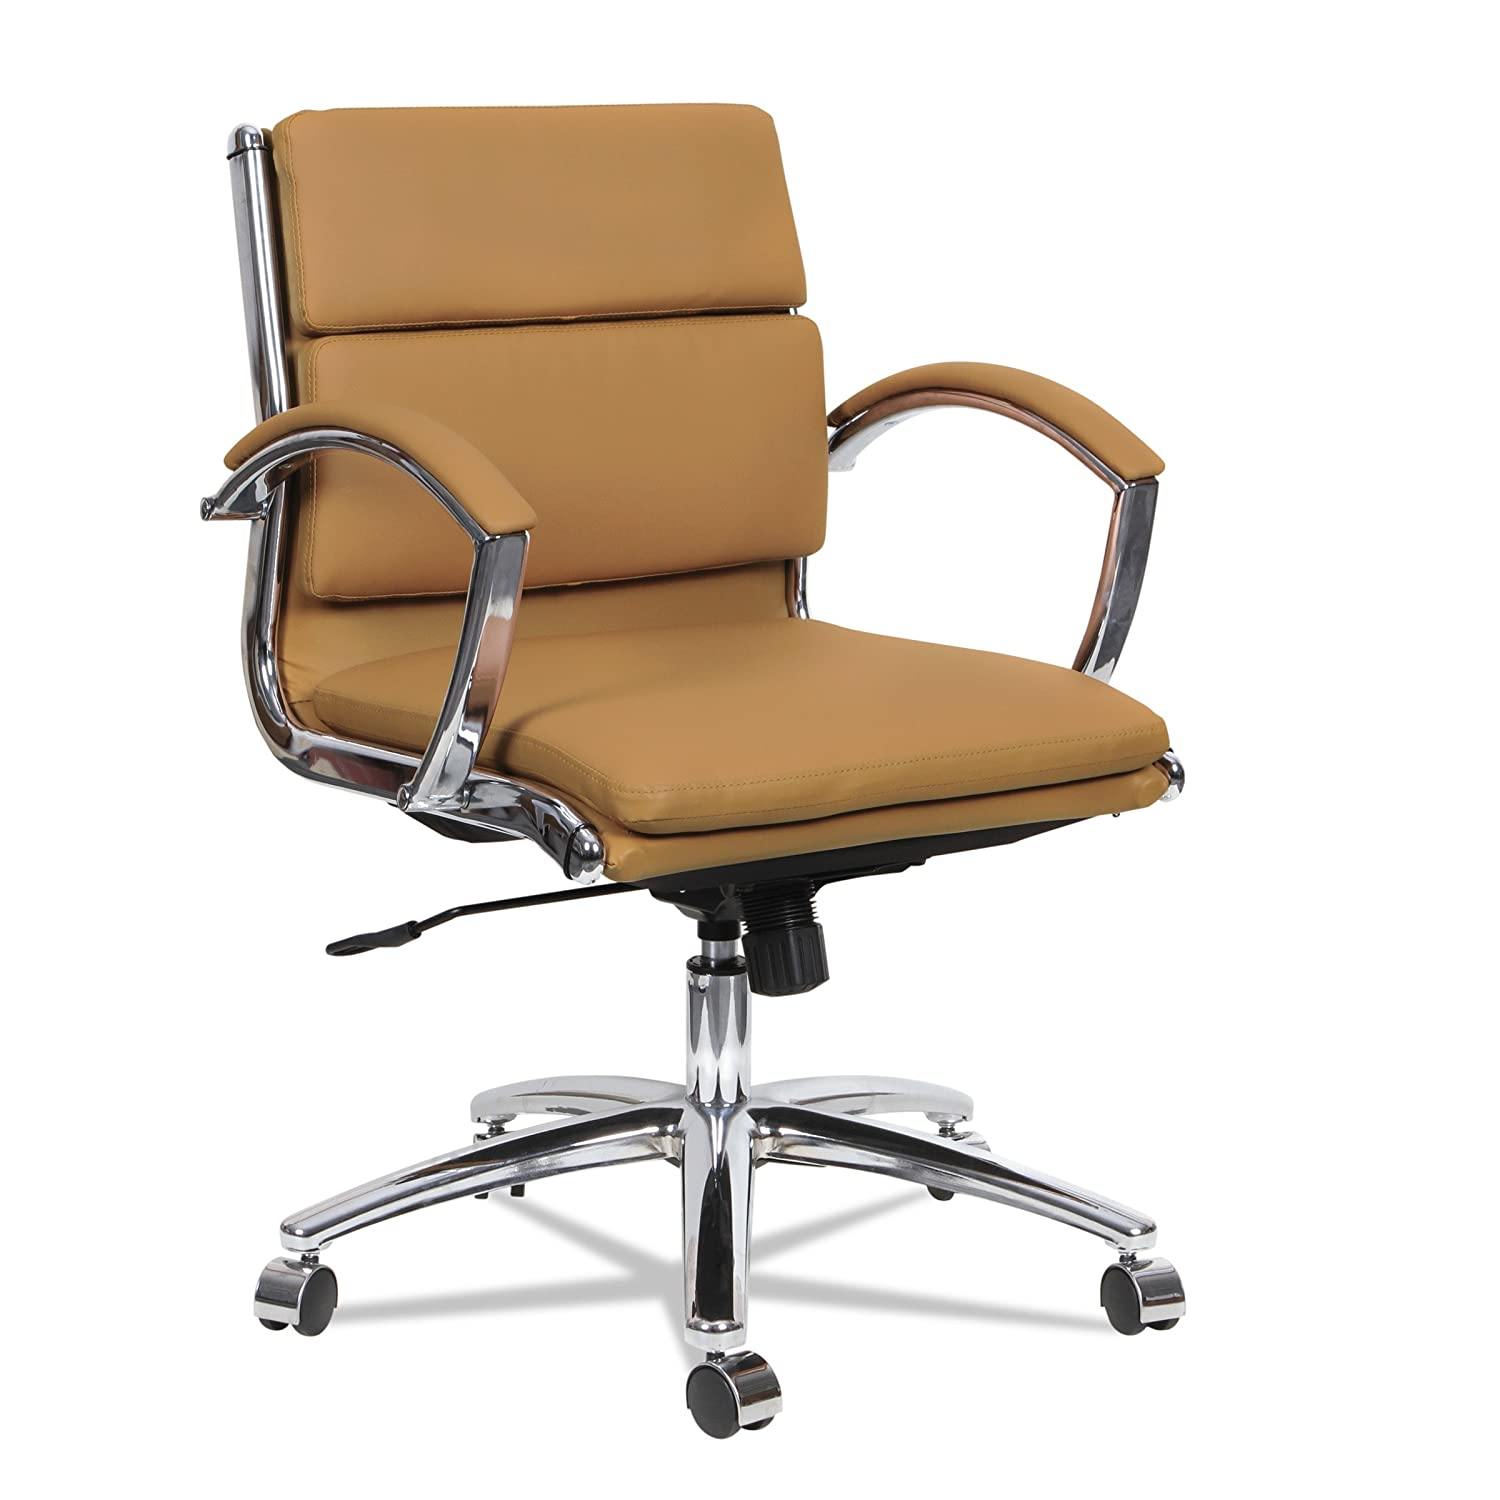 Alera ALE Neratoli Low-Back Slim Profile Chair, Camel Soft Leather, Chrome Frame